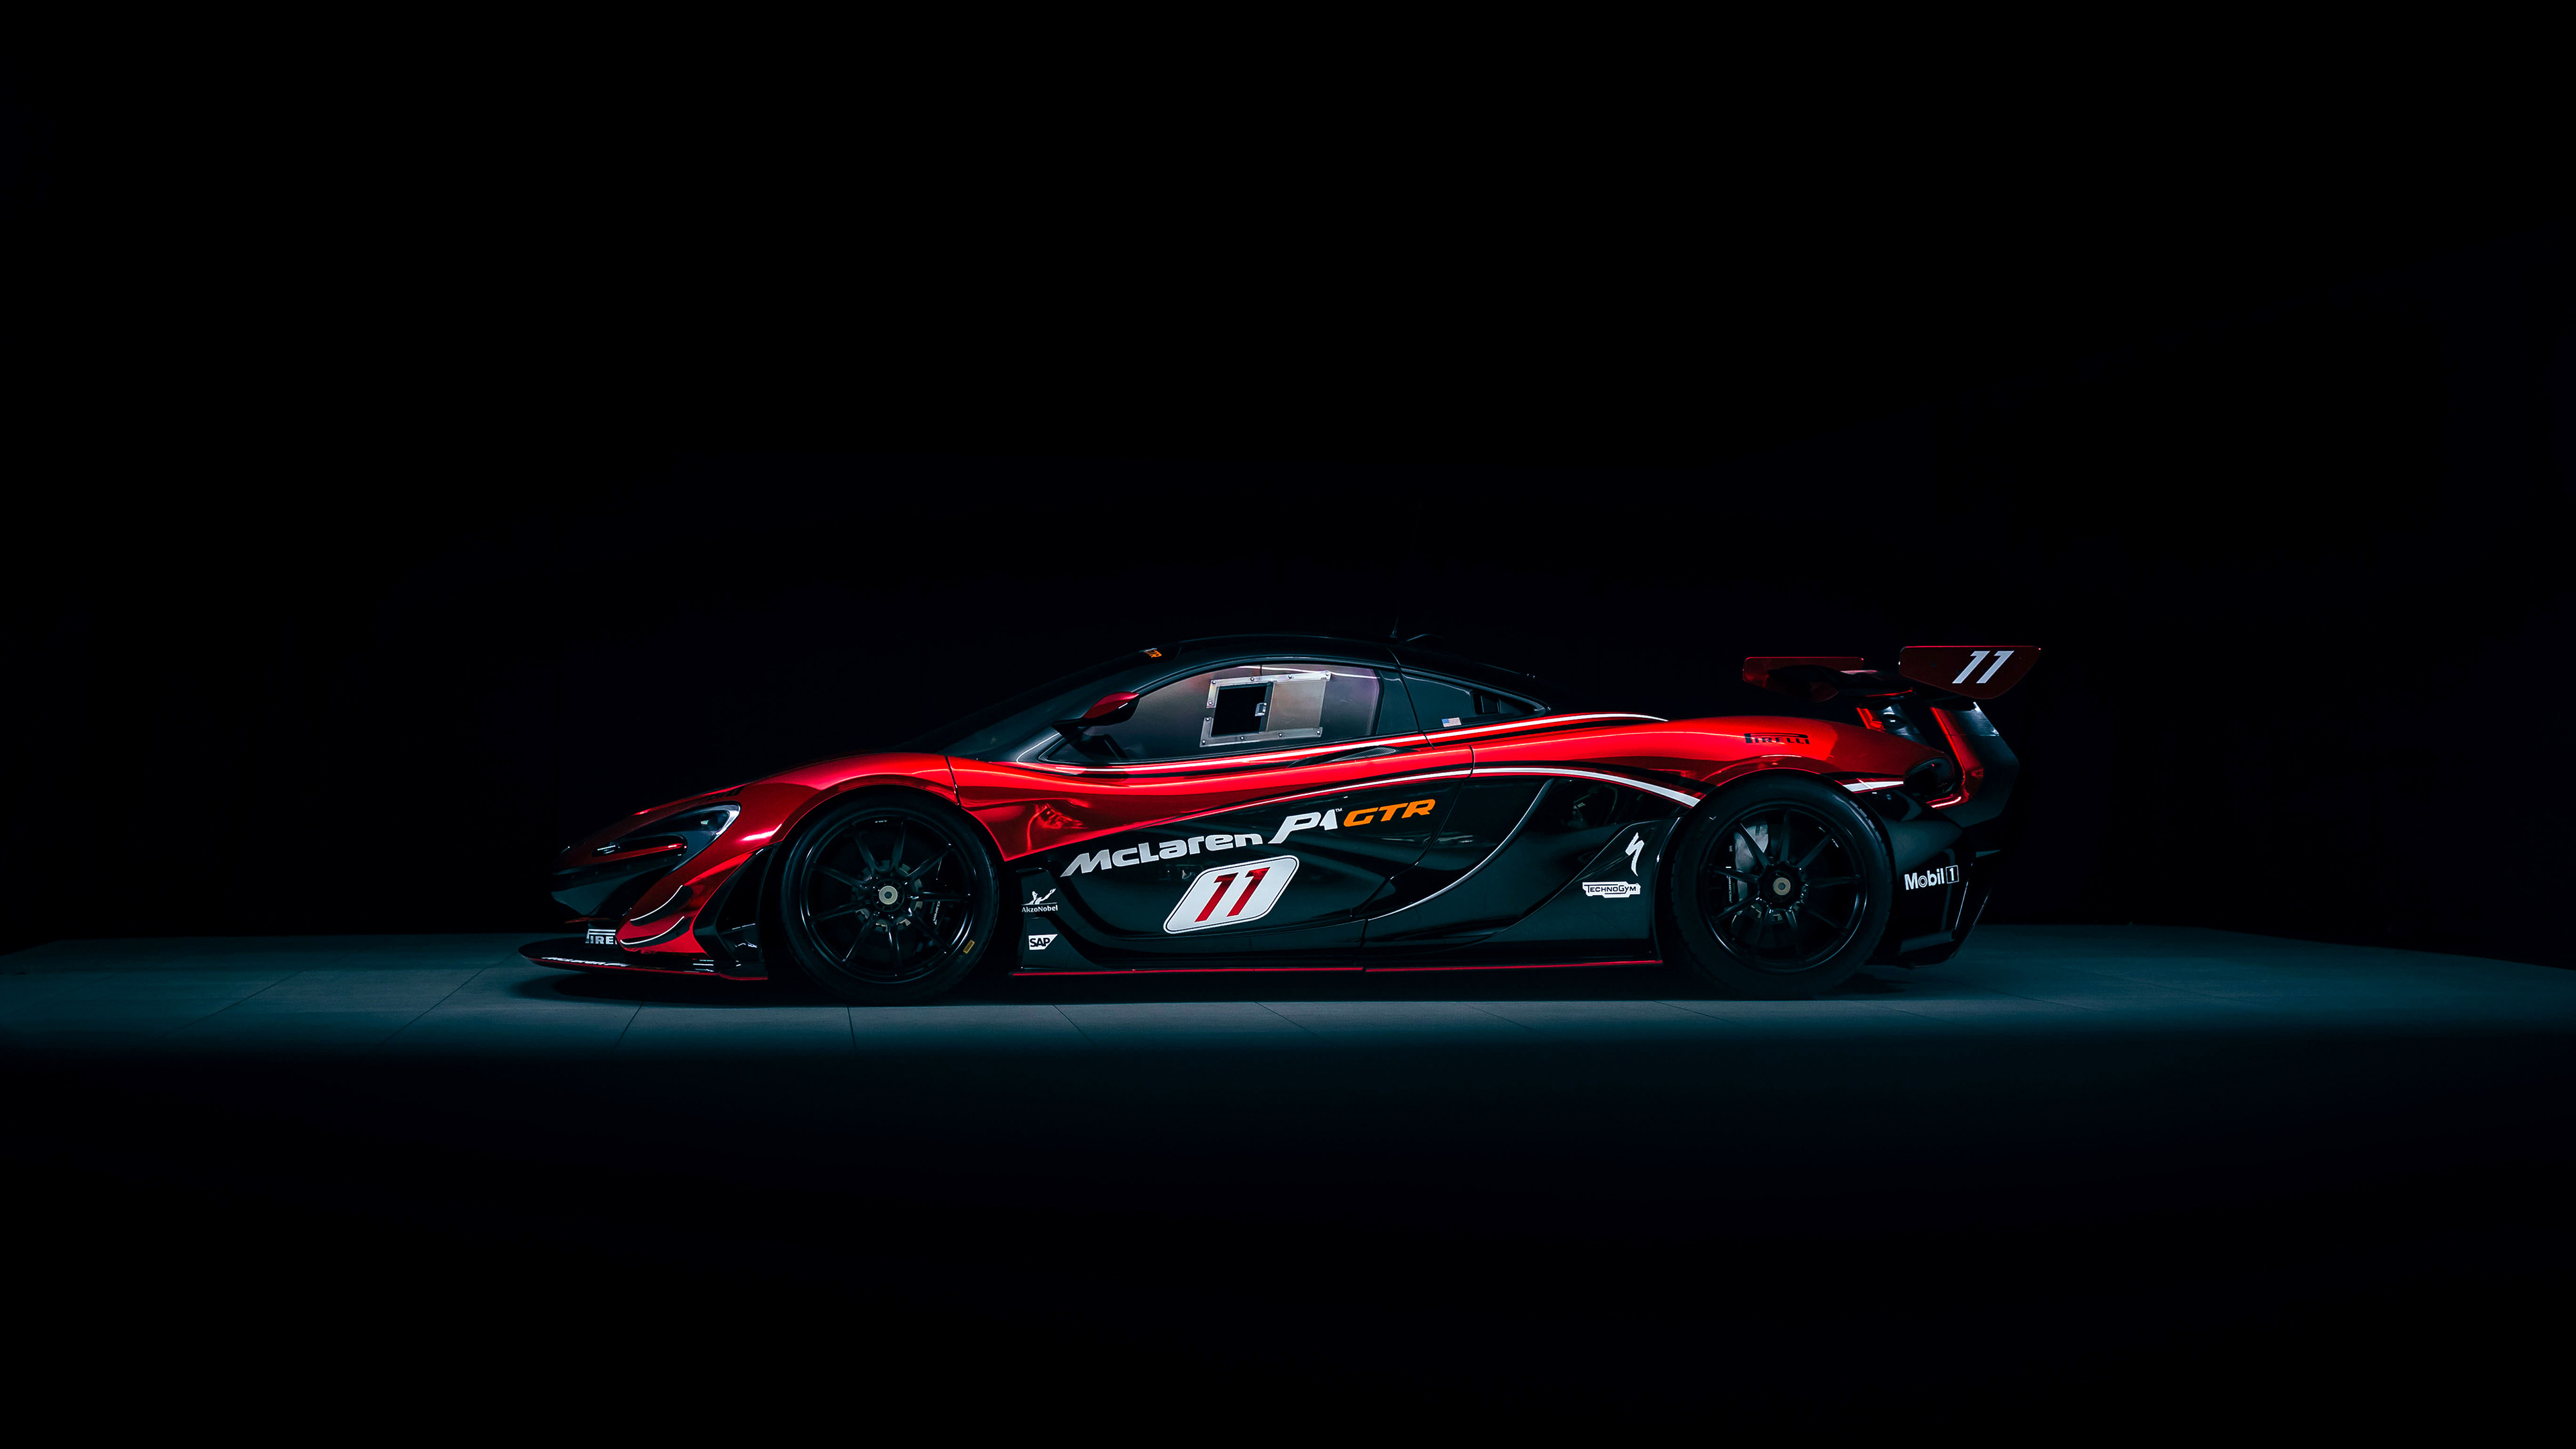 mclaren p1 gtr 4k 1539108023 - Mclaren P1 GTR 4k - mclaren wallpapers, mclaren p1 wallpapers, hd-wallpapers, cars wallpapers, 4k-wallpapers